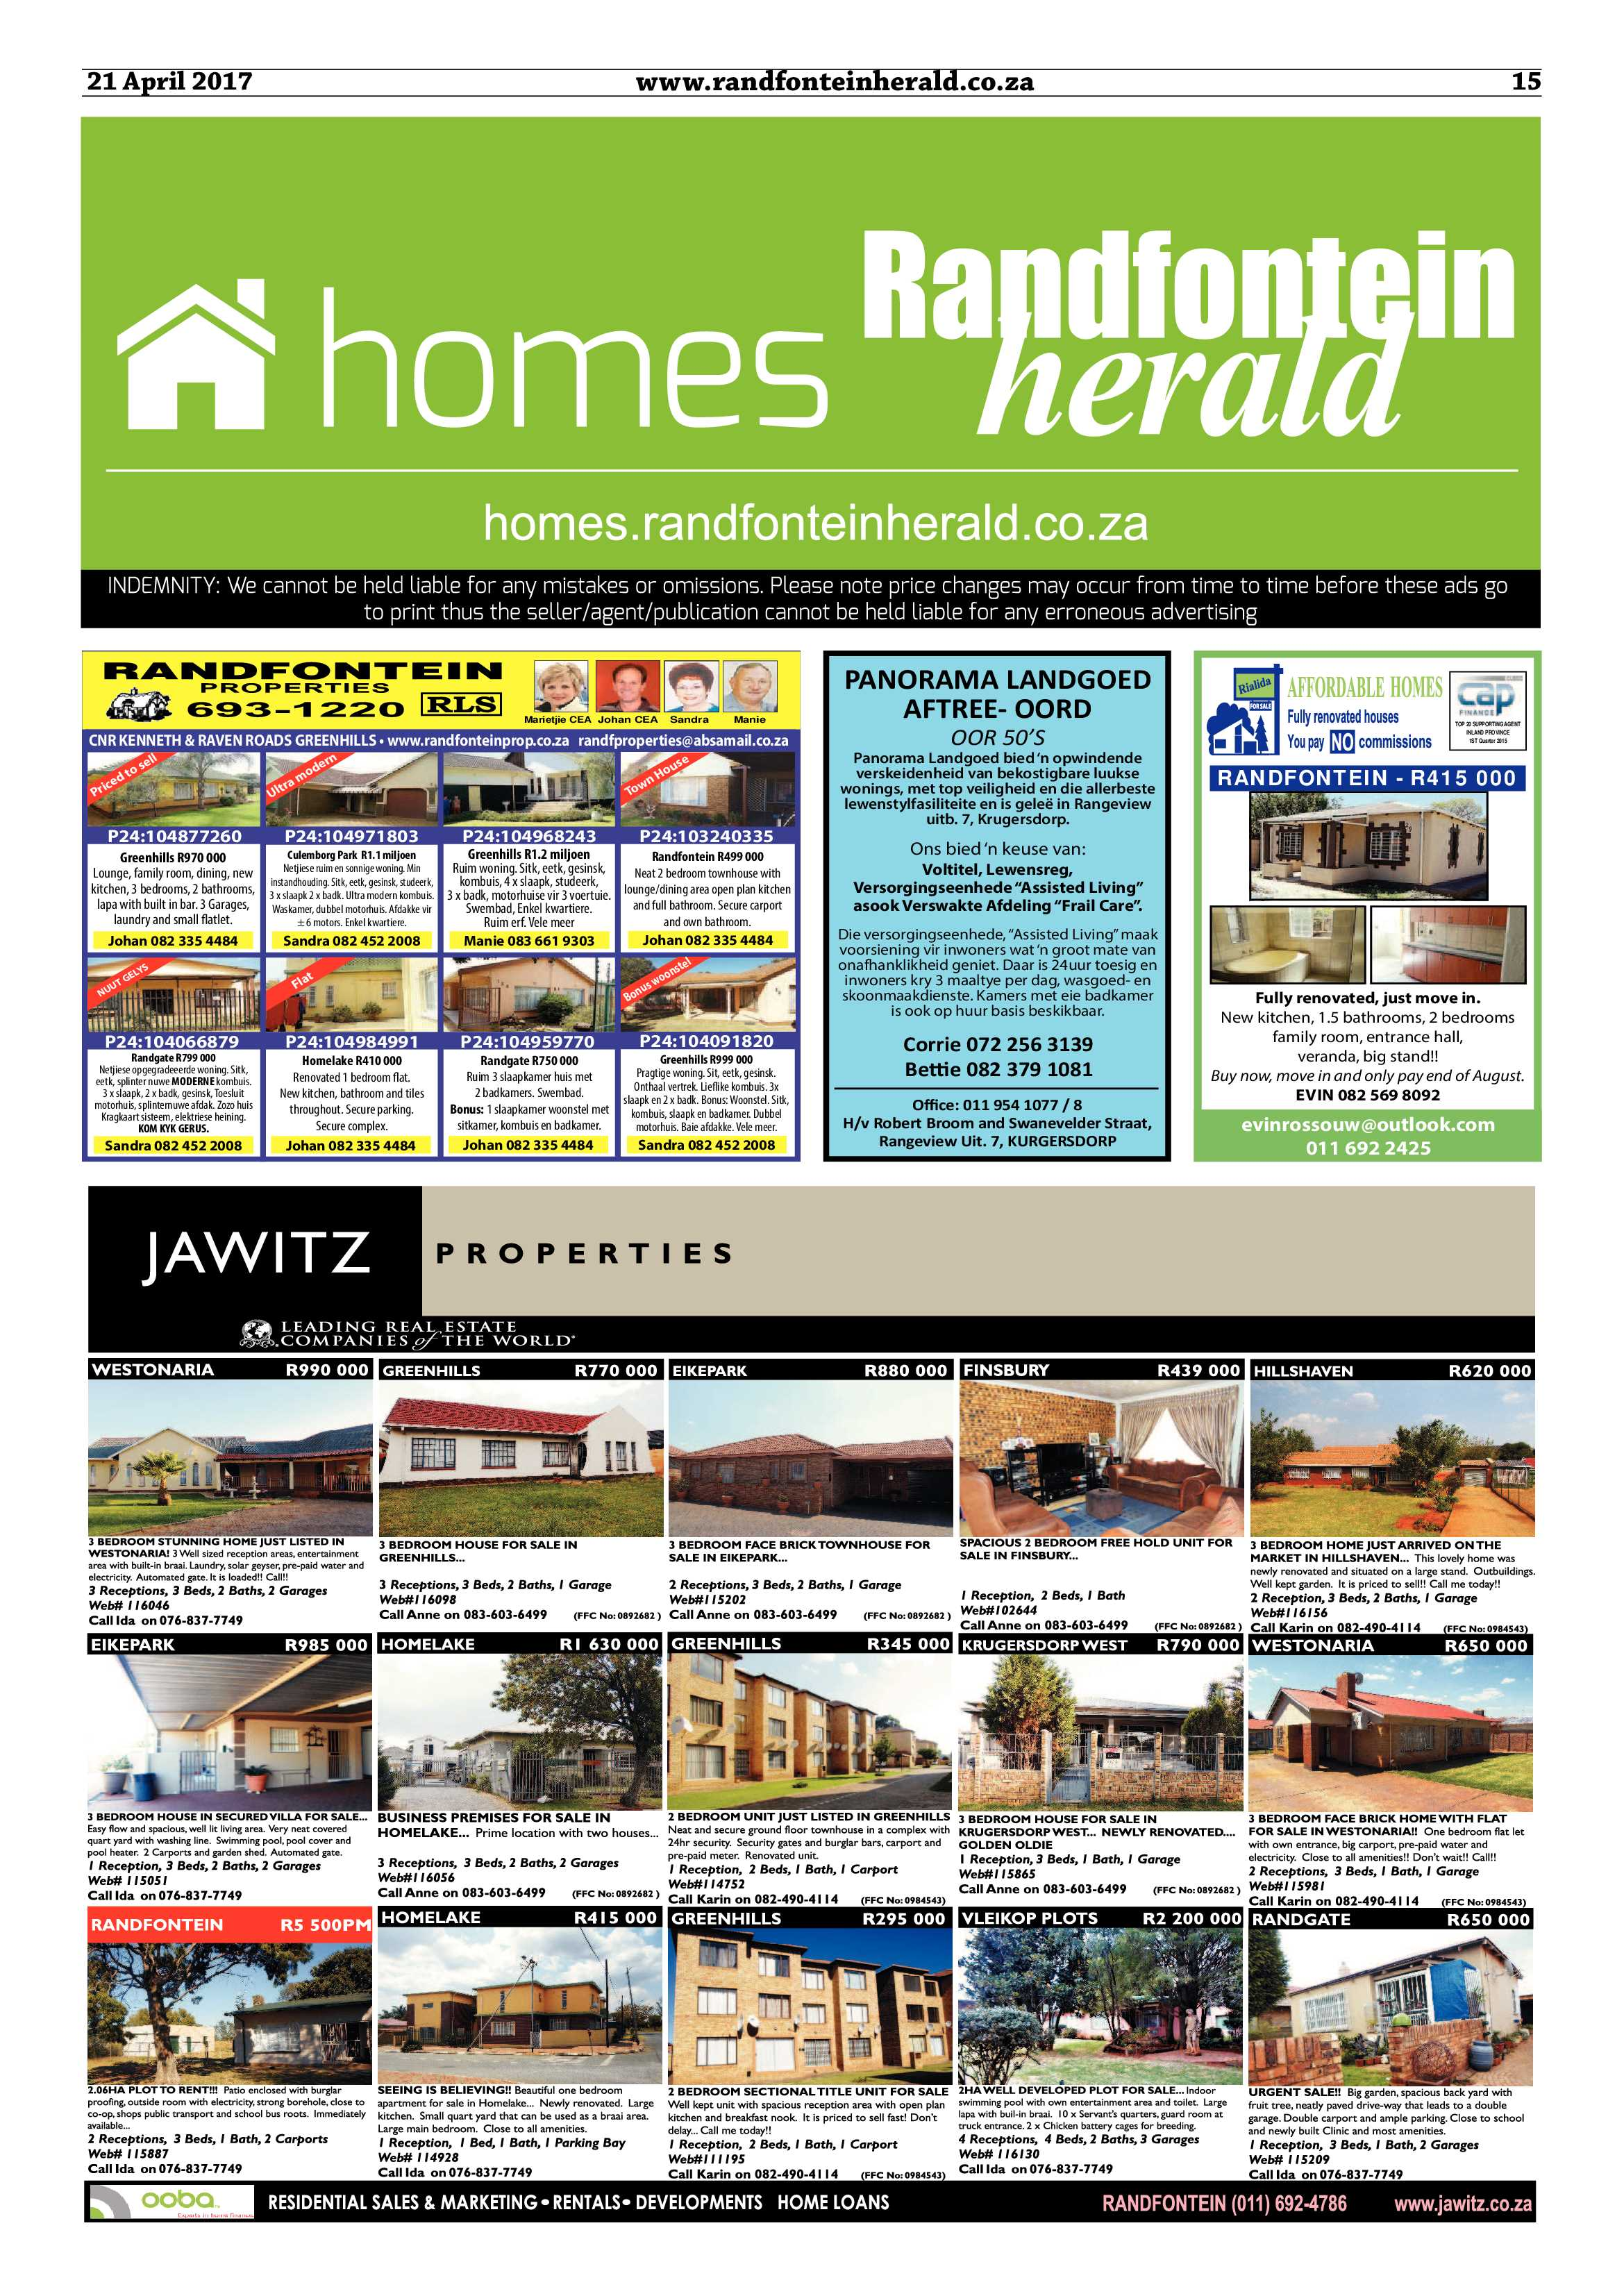 randfontein-herald-21-april-2017-epapers-page-15